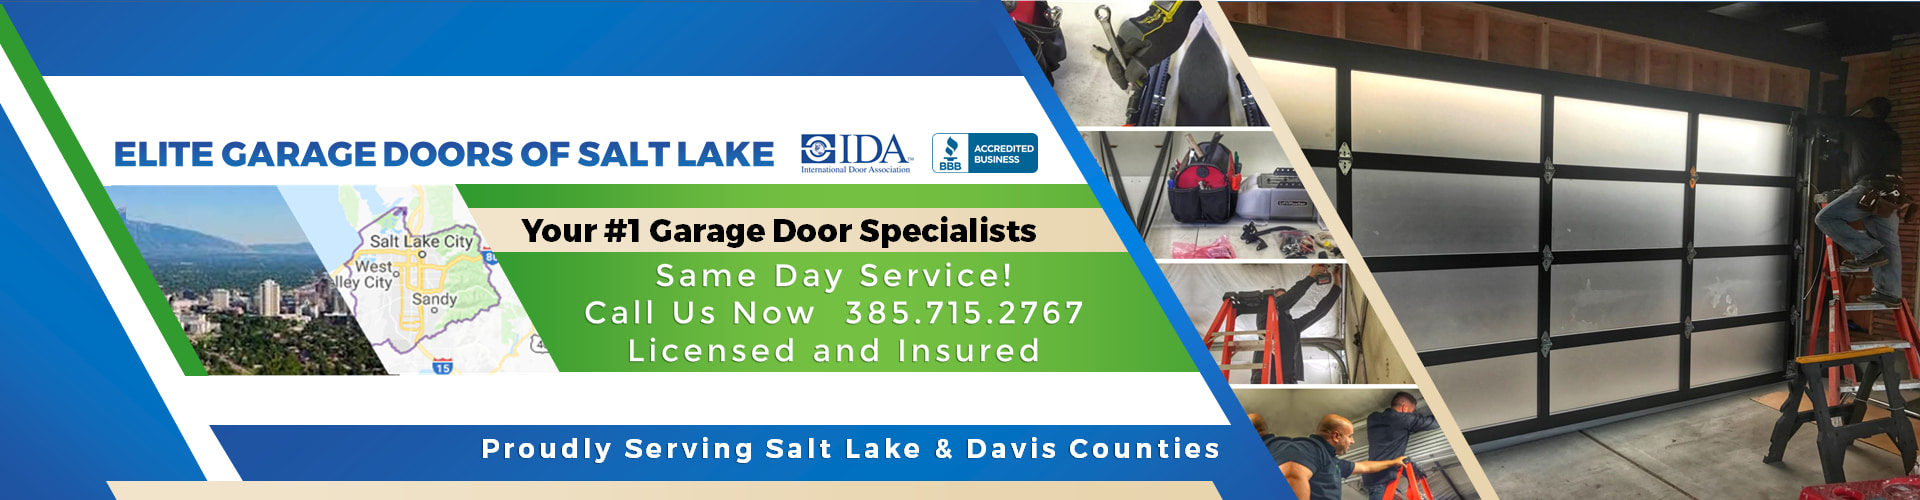 Elite® Garage Doors, Repair & Services In Salt Lake City UT & Salt Lake County